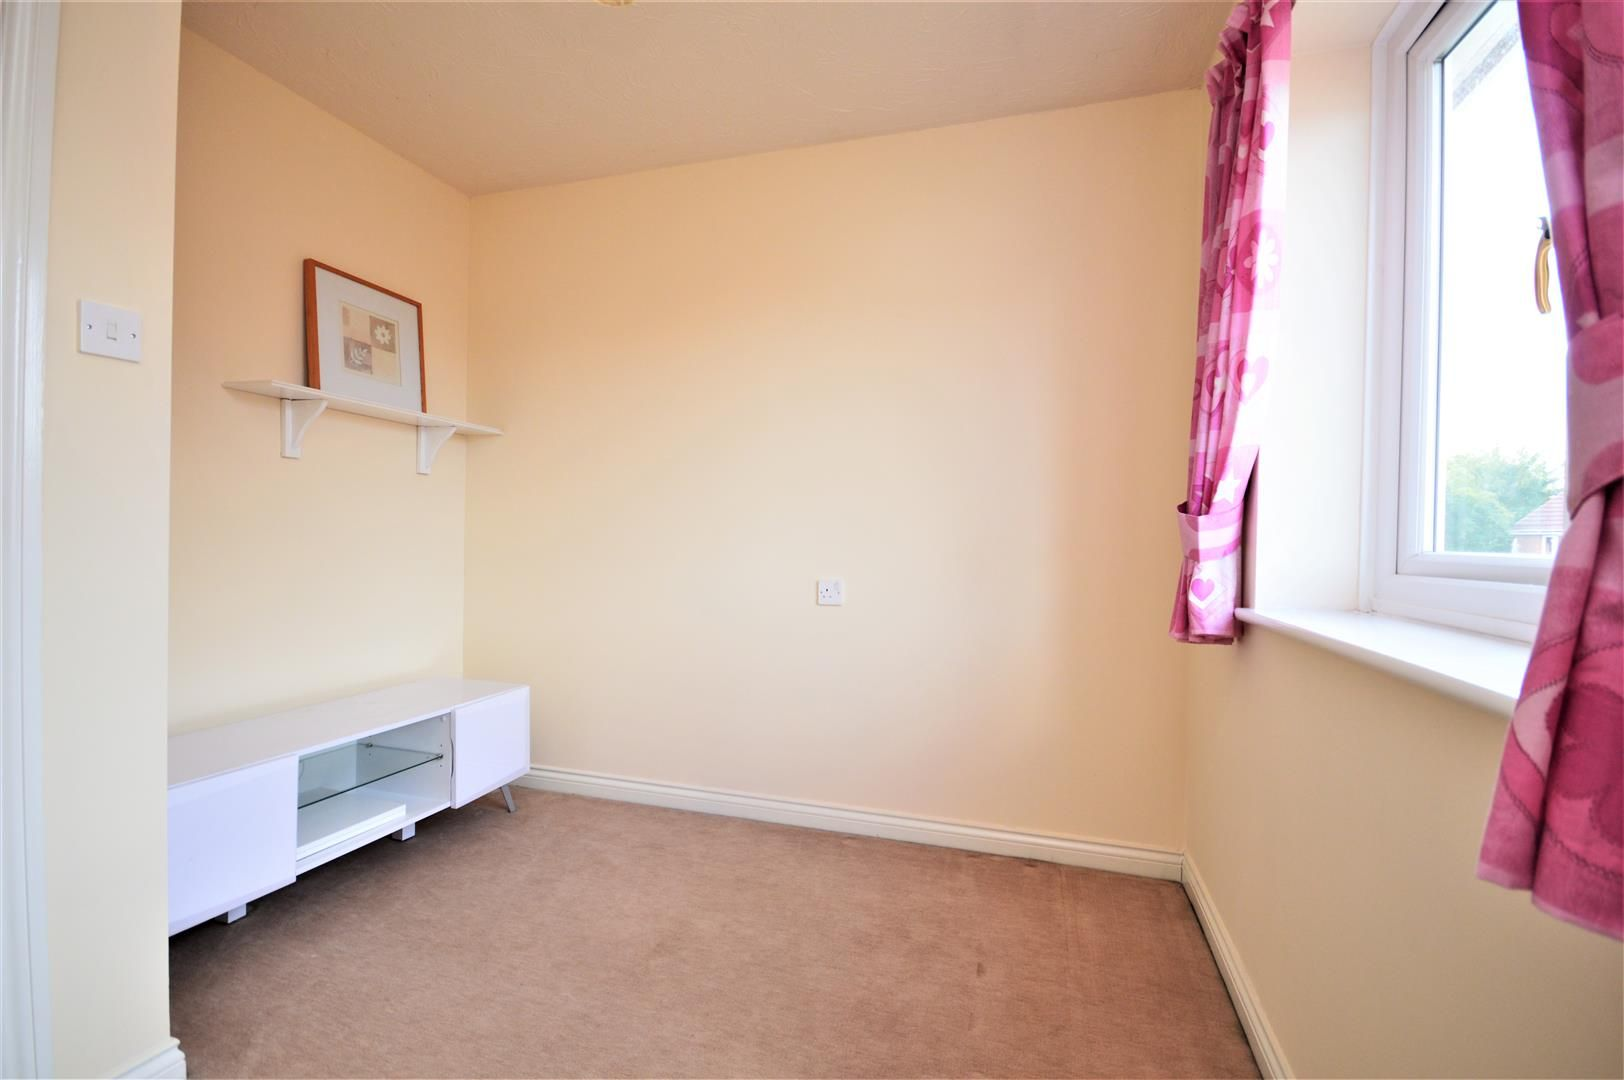 4 bed detached for sale in Belmont 12